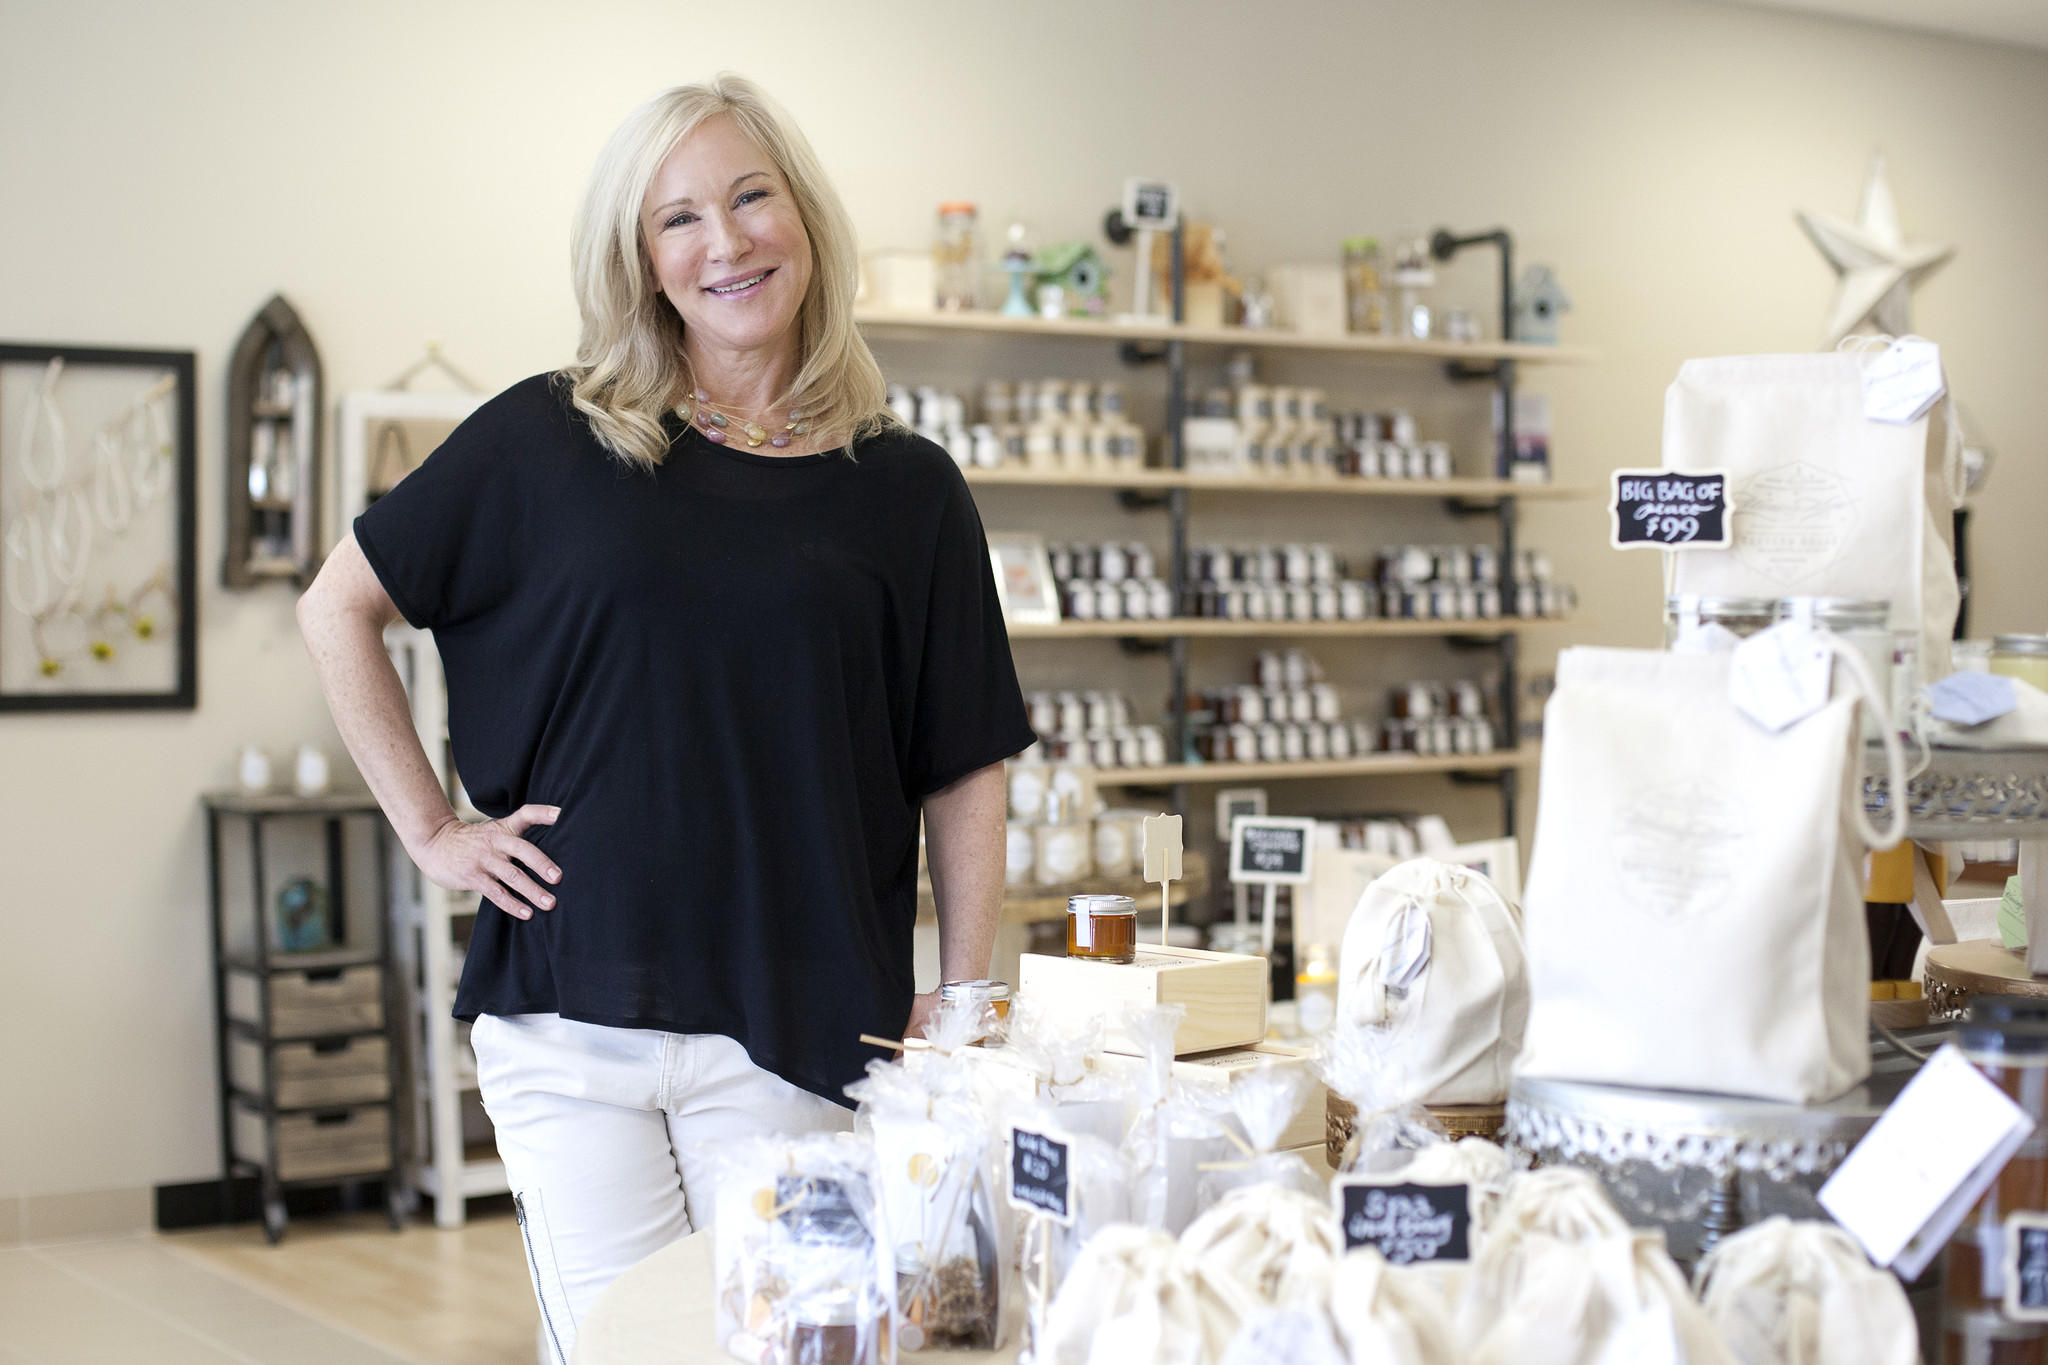 Honey House's Kara Brook poses for a photo at her shop in Owings Mills.